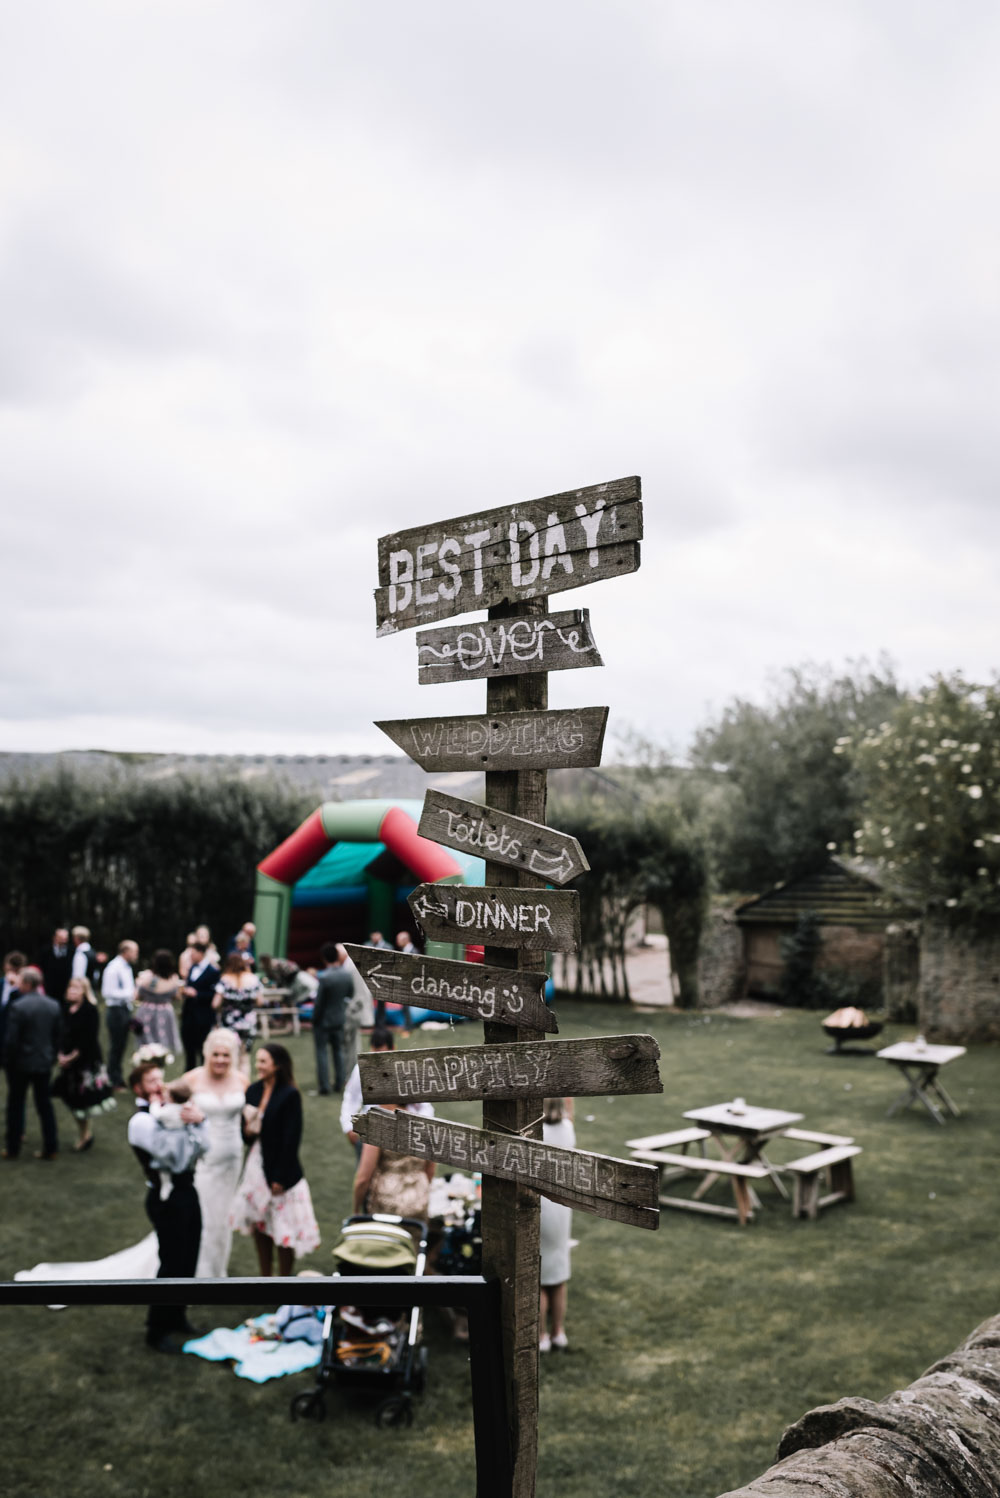 wedding signage, wedding sign post, festival sign, rustic sign, best day ever, alternative wedding photography, barn wedding, d.i.y wedding, diy wedding, fun, glitter, handmade, herefordshire wedding, laidback, lyde court, marriage, oobaloos photography, party, personalised, rodeo, rustic wedding, wedding